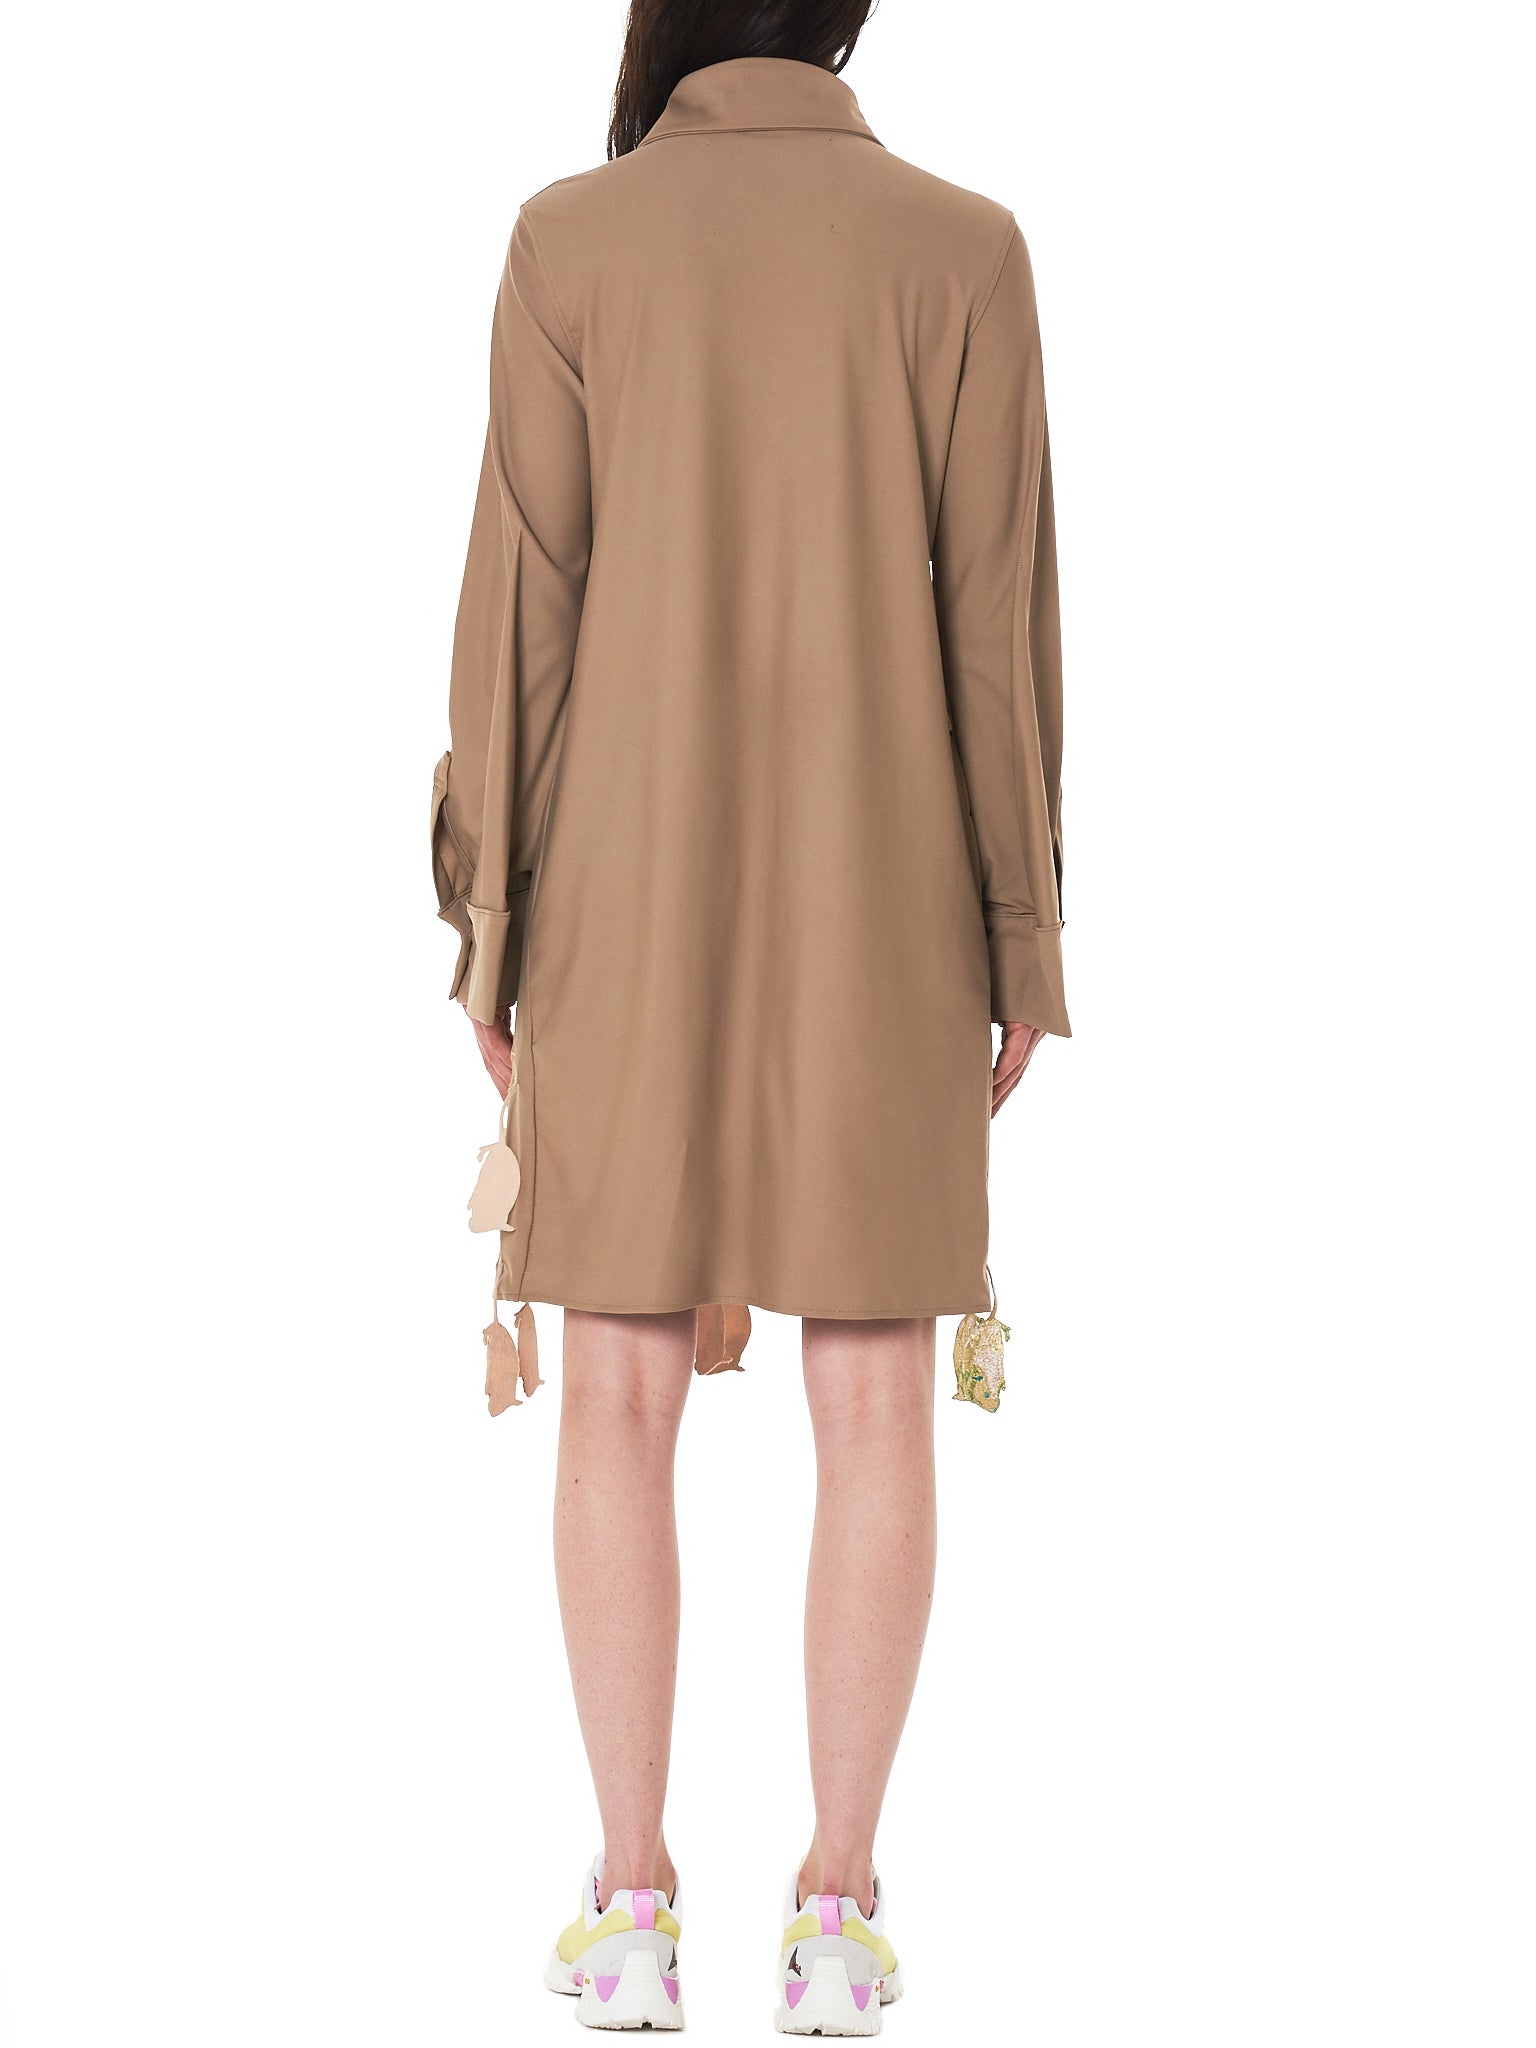 'Mouse' Tassel Long Shirt (JFSS18B011-BEIGE)